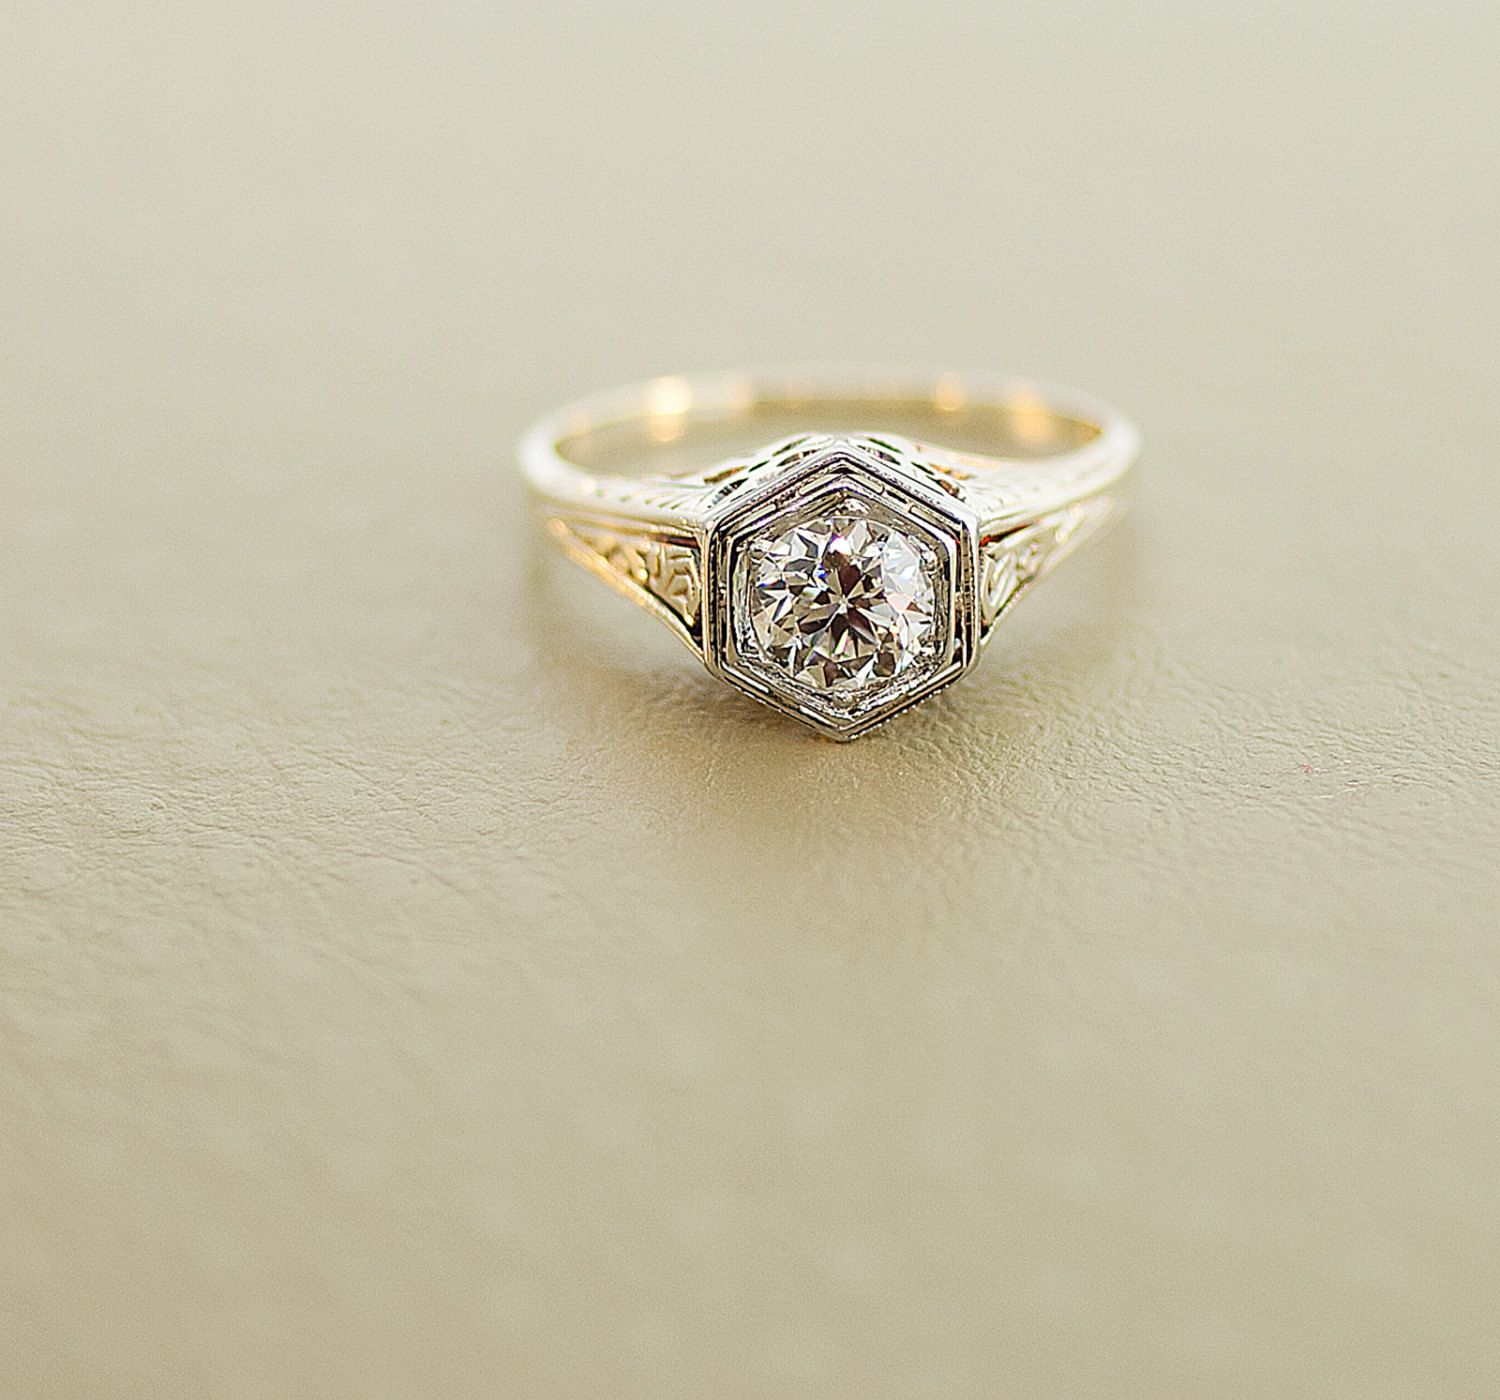 Antique Engagement Ring Antique 1920s 14K Yellow and